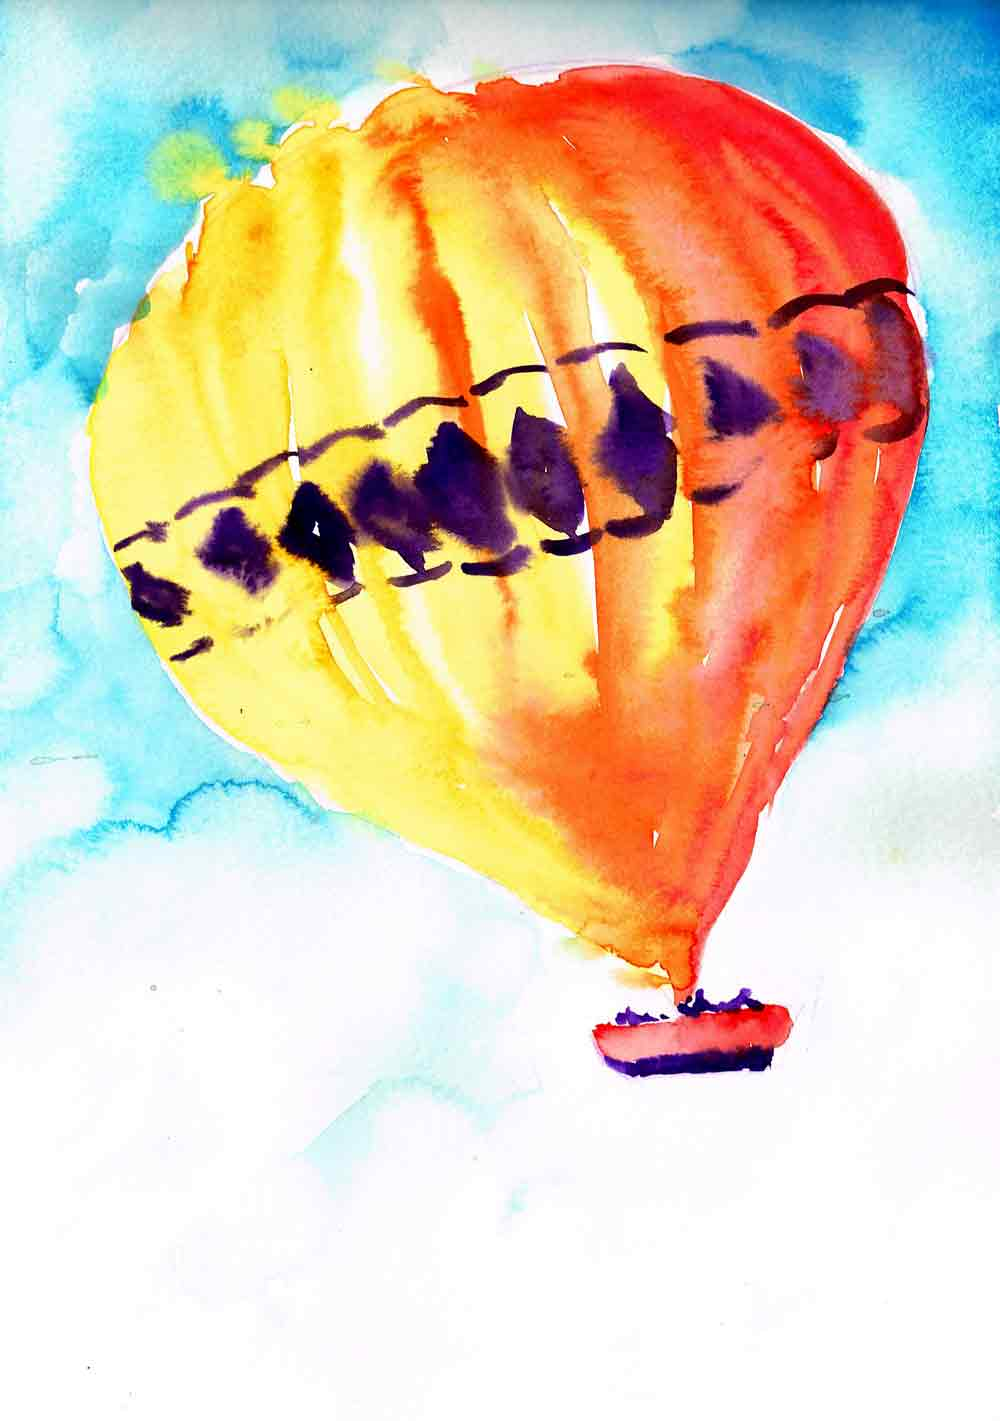 Jan 19 Hot Air Balloons II